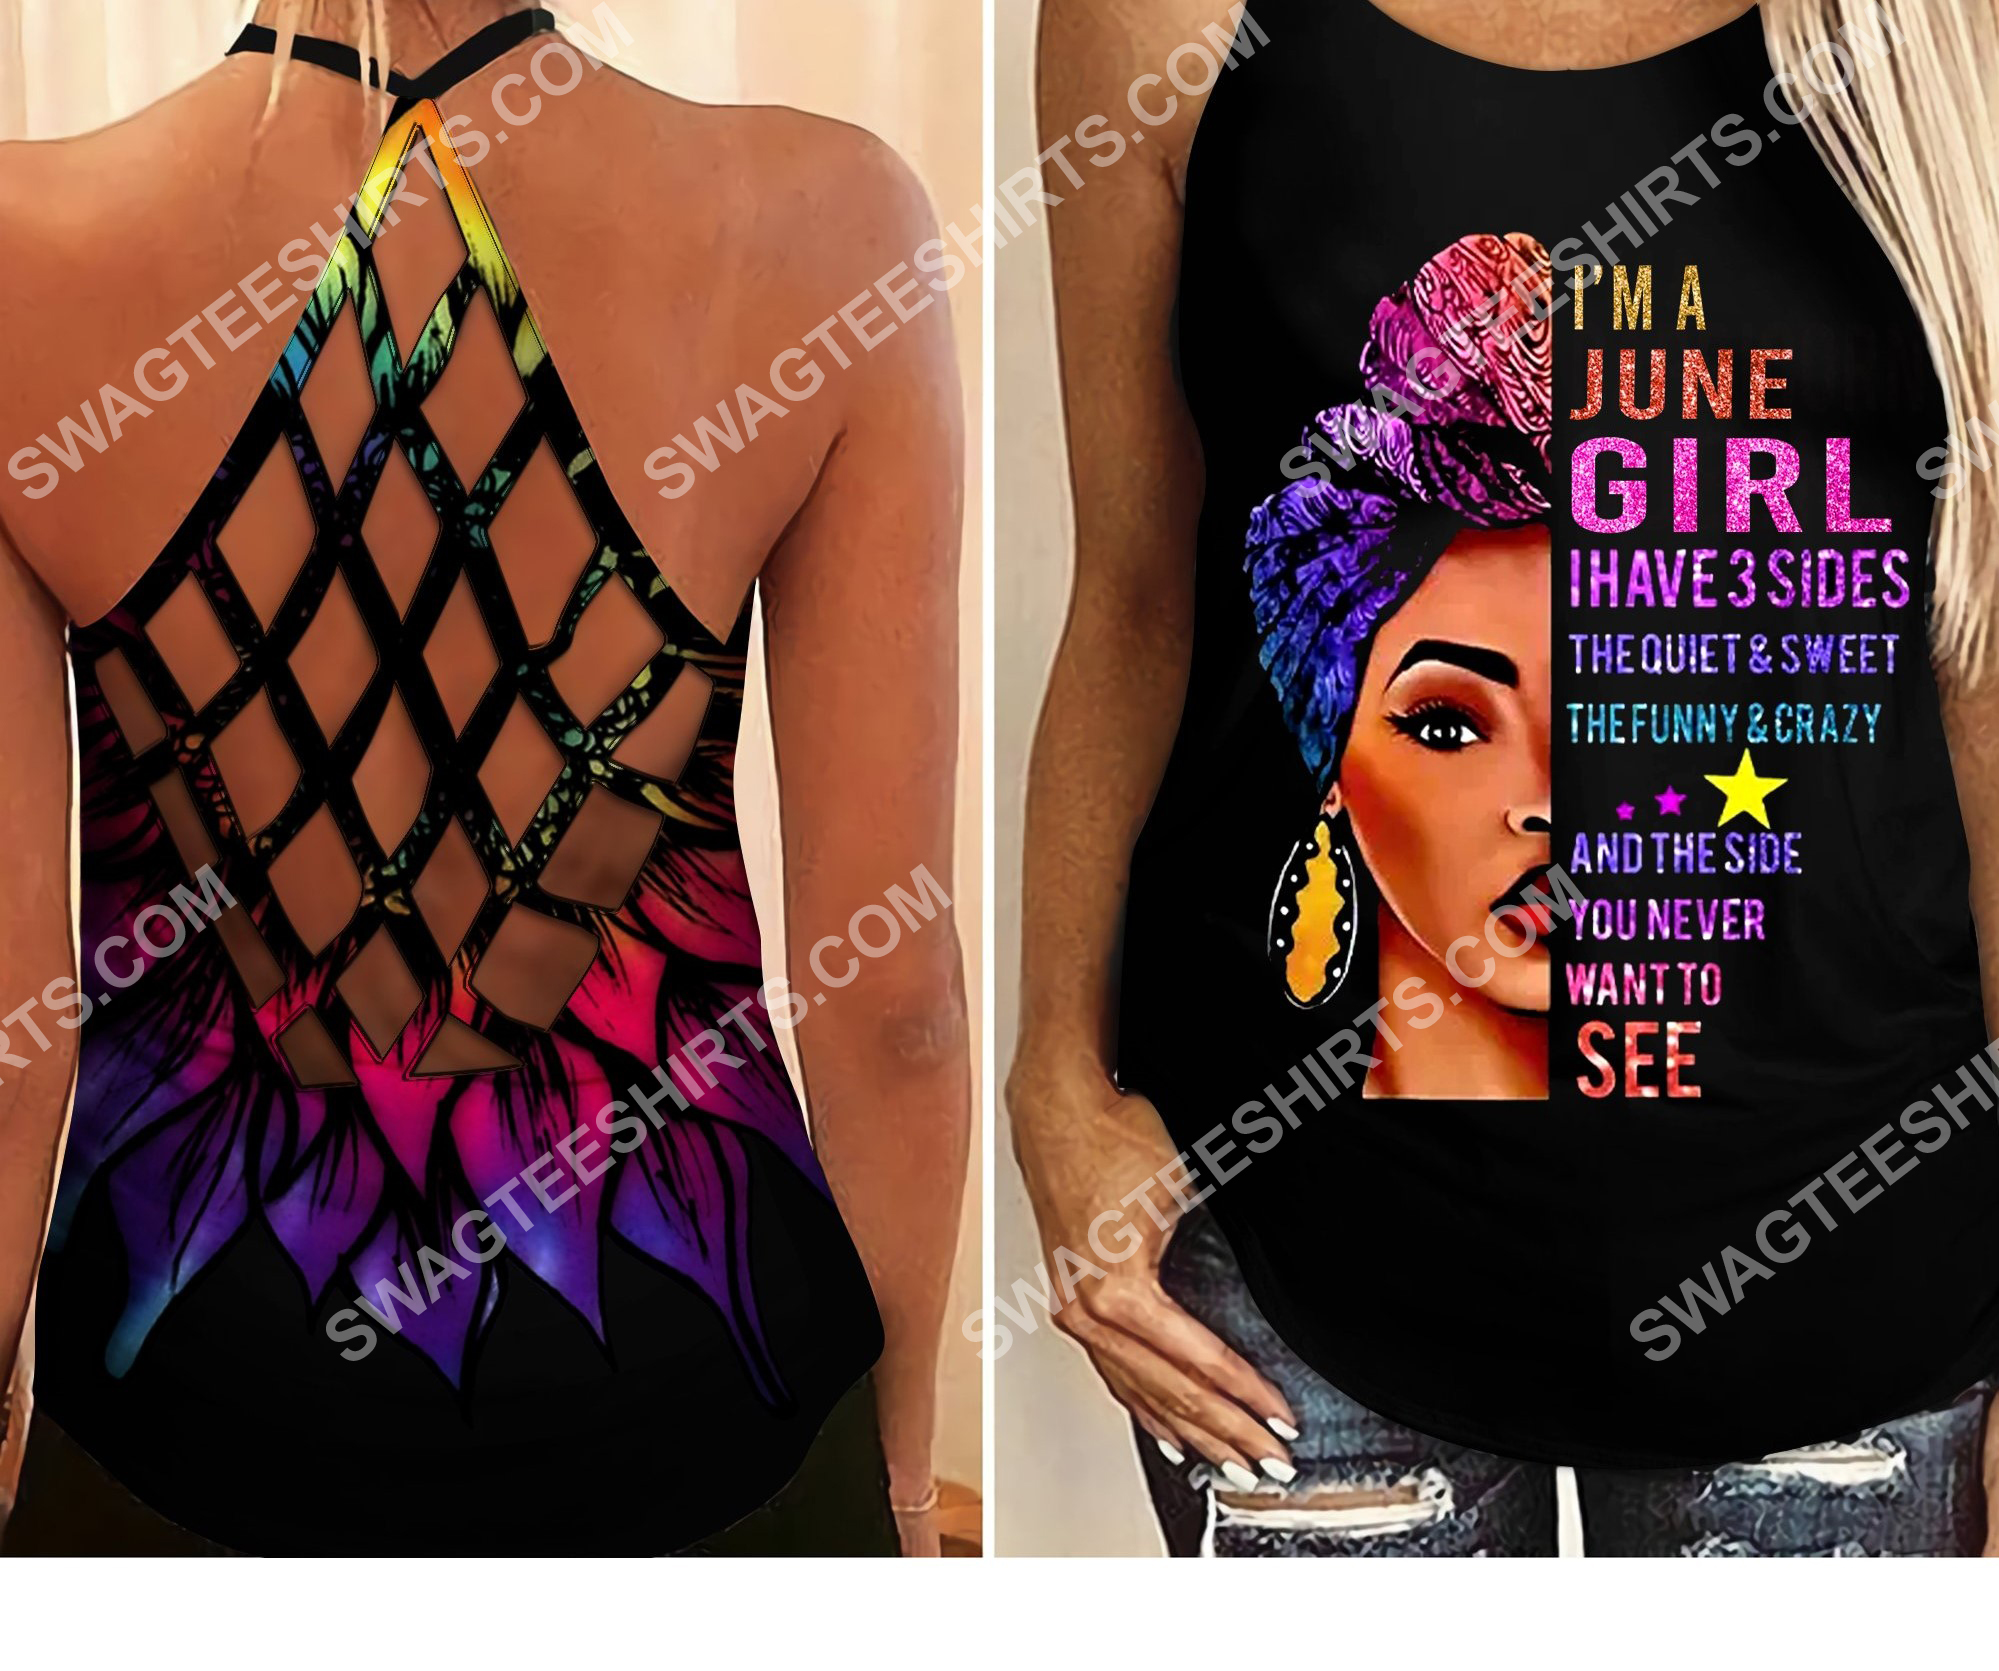 i'm a june girl i have 3 sides the quiet and sweet all over printed criss-cross tank top 2 - Copy (2)